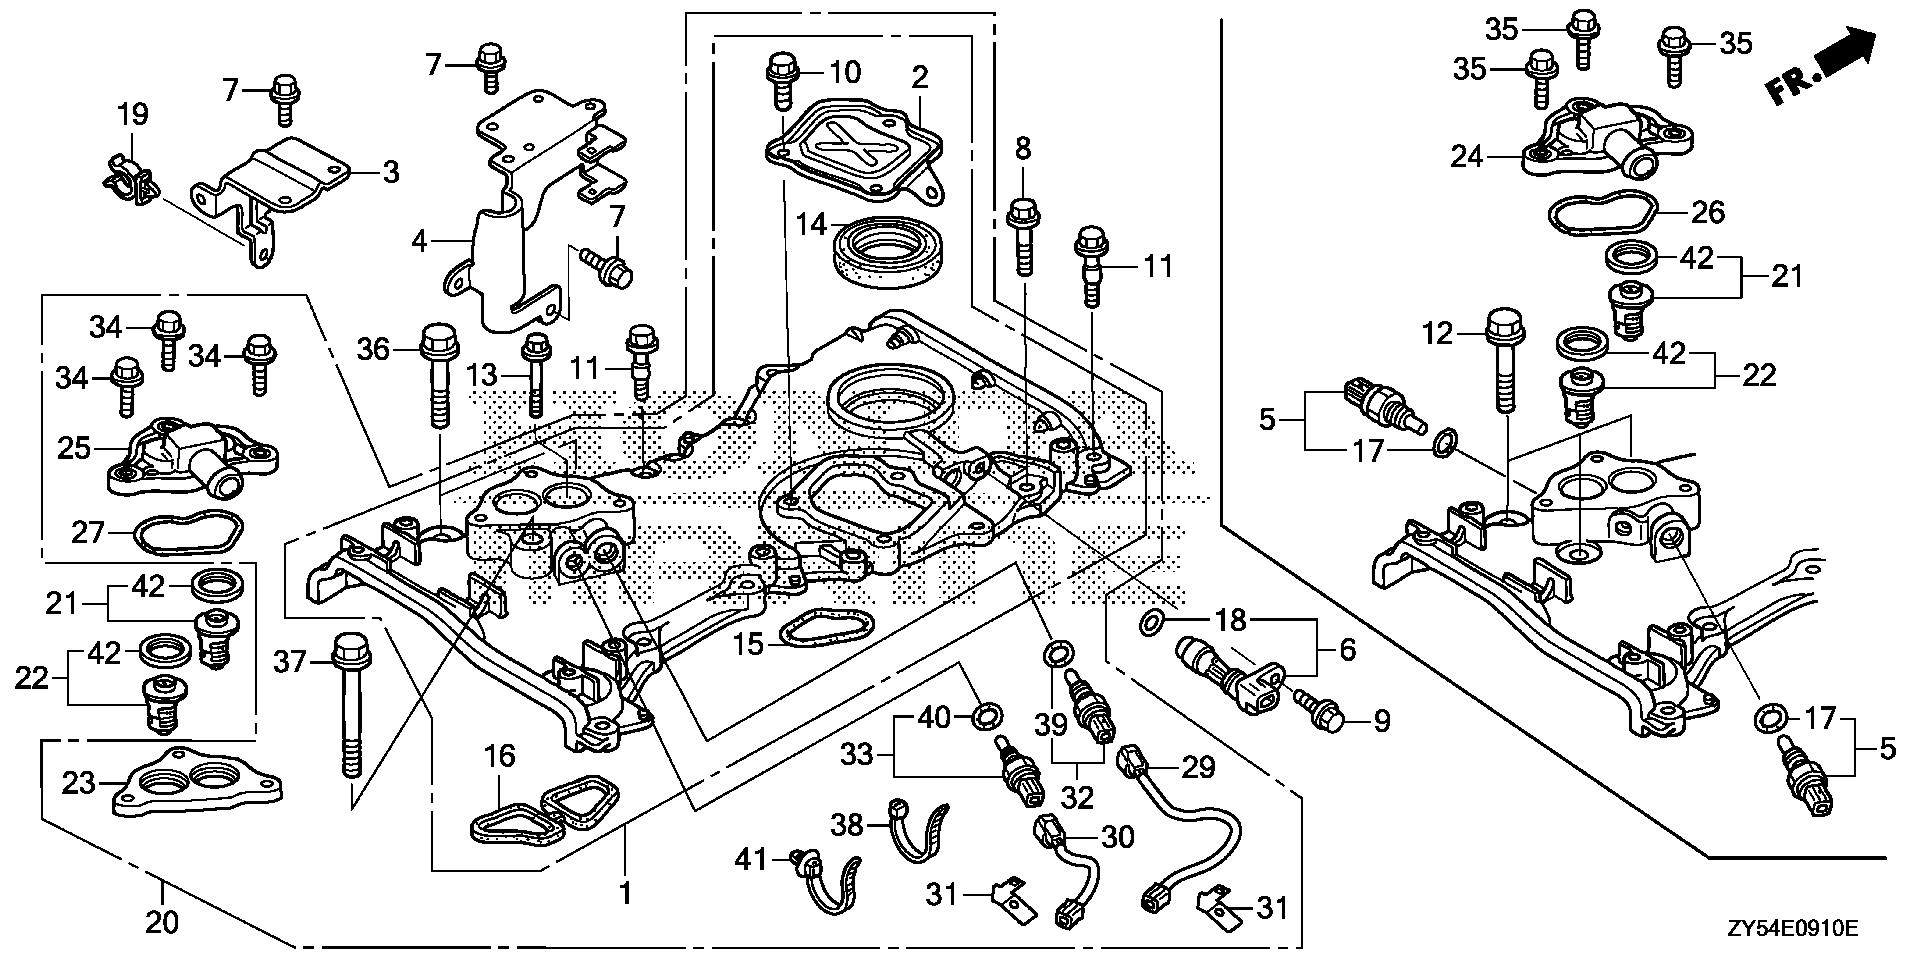 Johnson Outboard Wiring Diagram 1994 90 Hp. Diagram. Auto